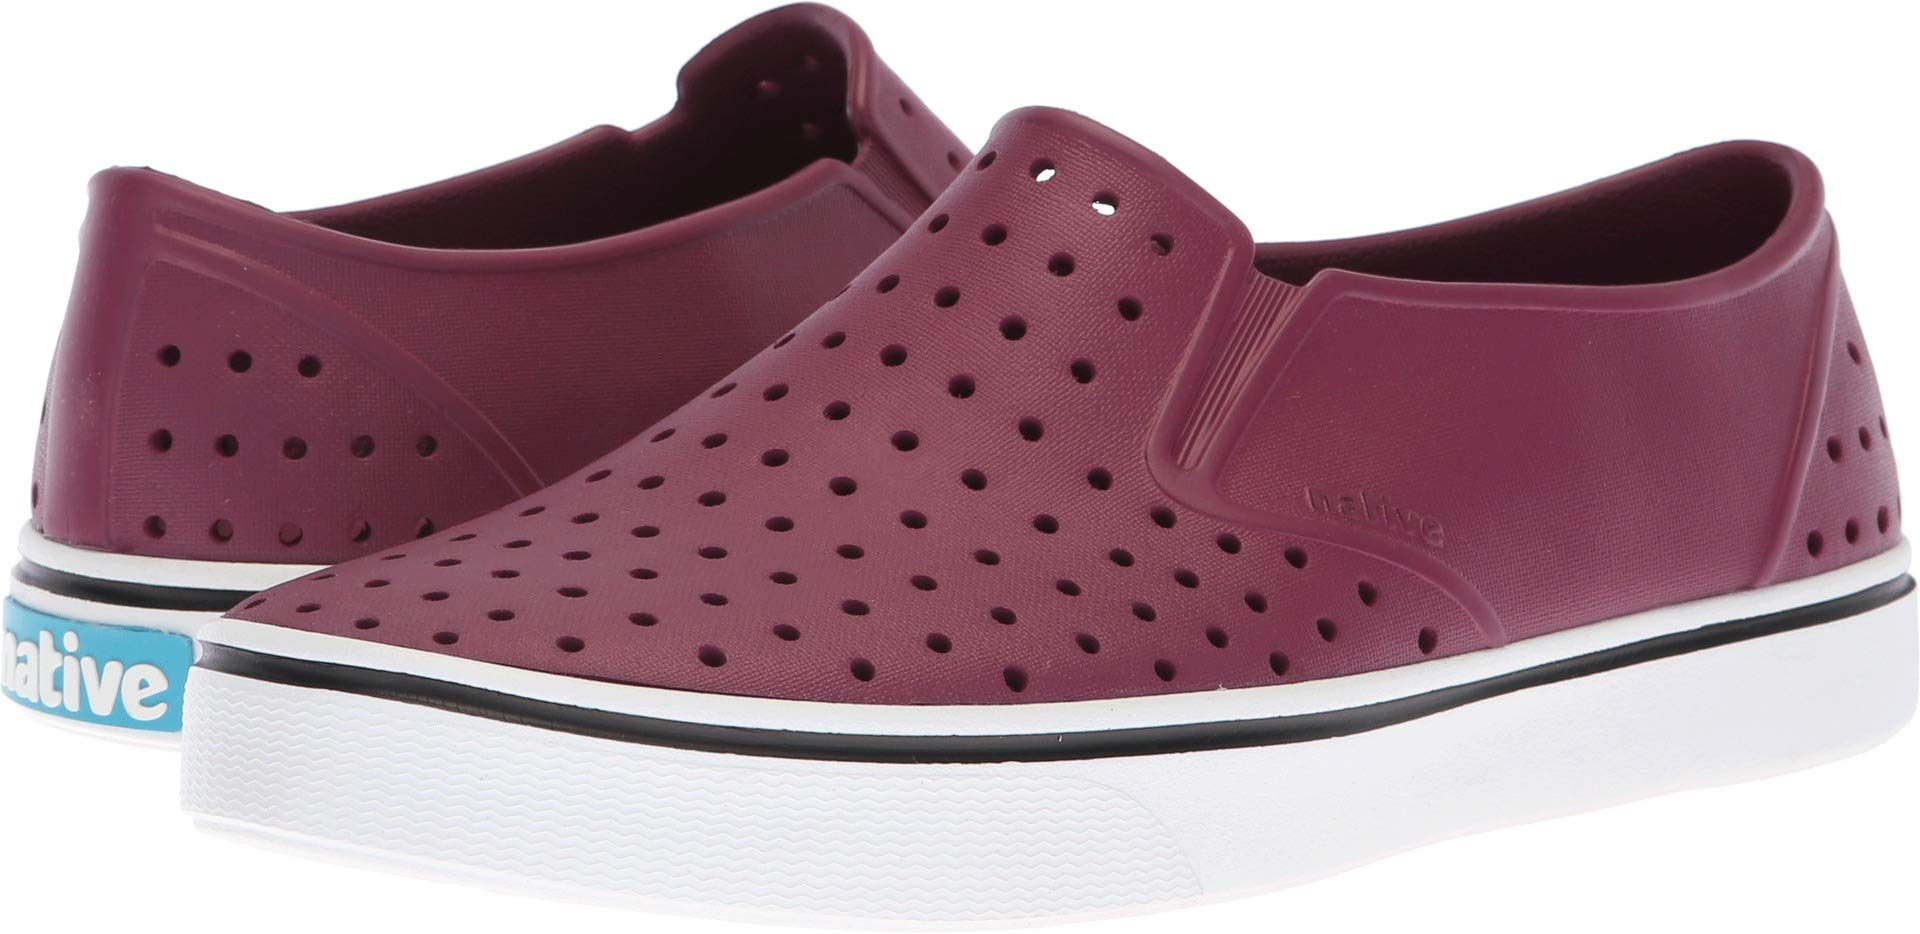 native Shoes Unisex Miles Root Red/Shell White 11 Women / 9 Men M US